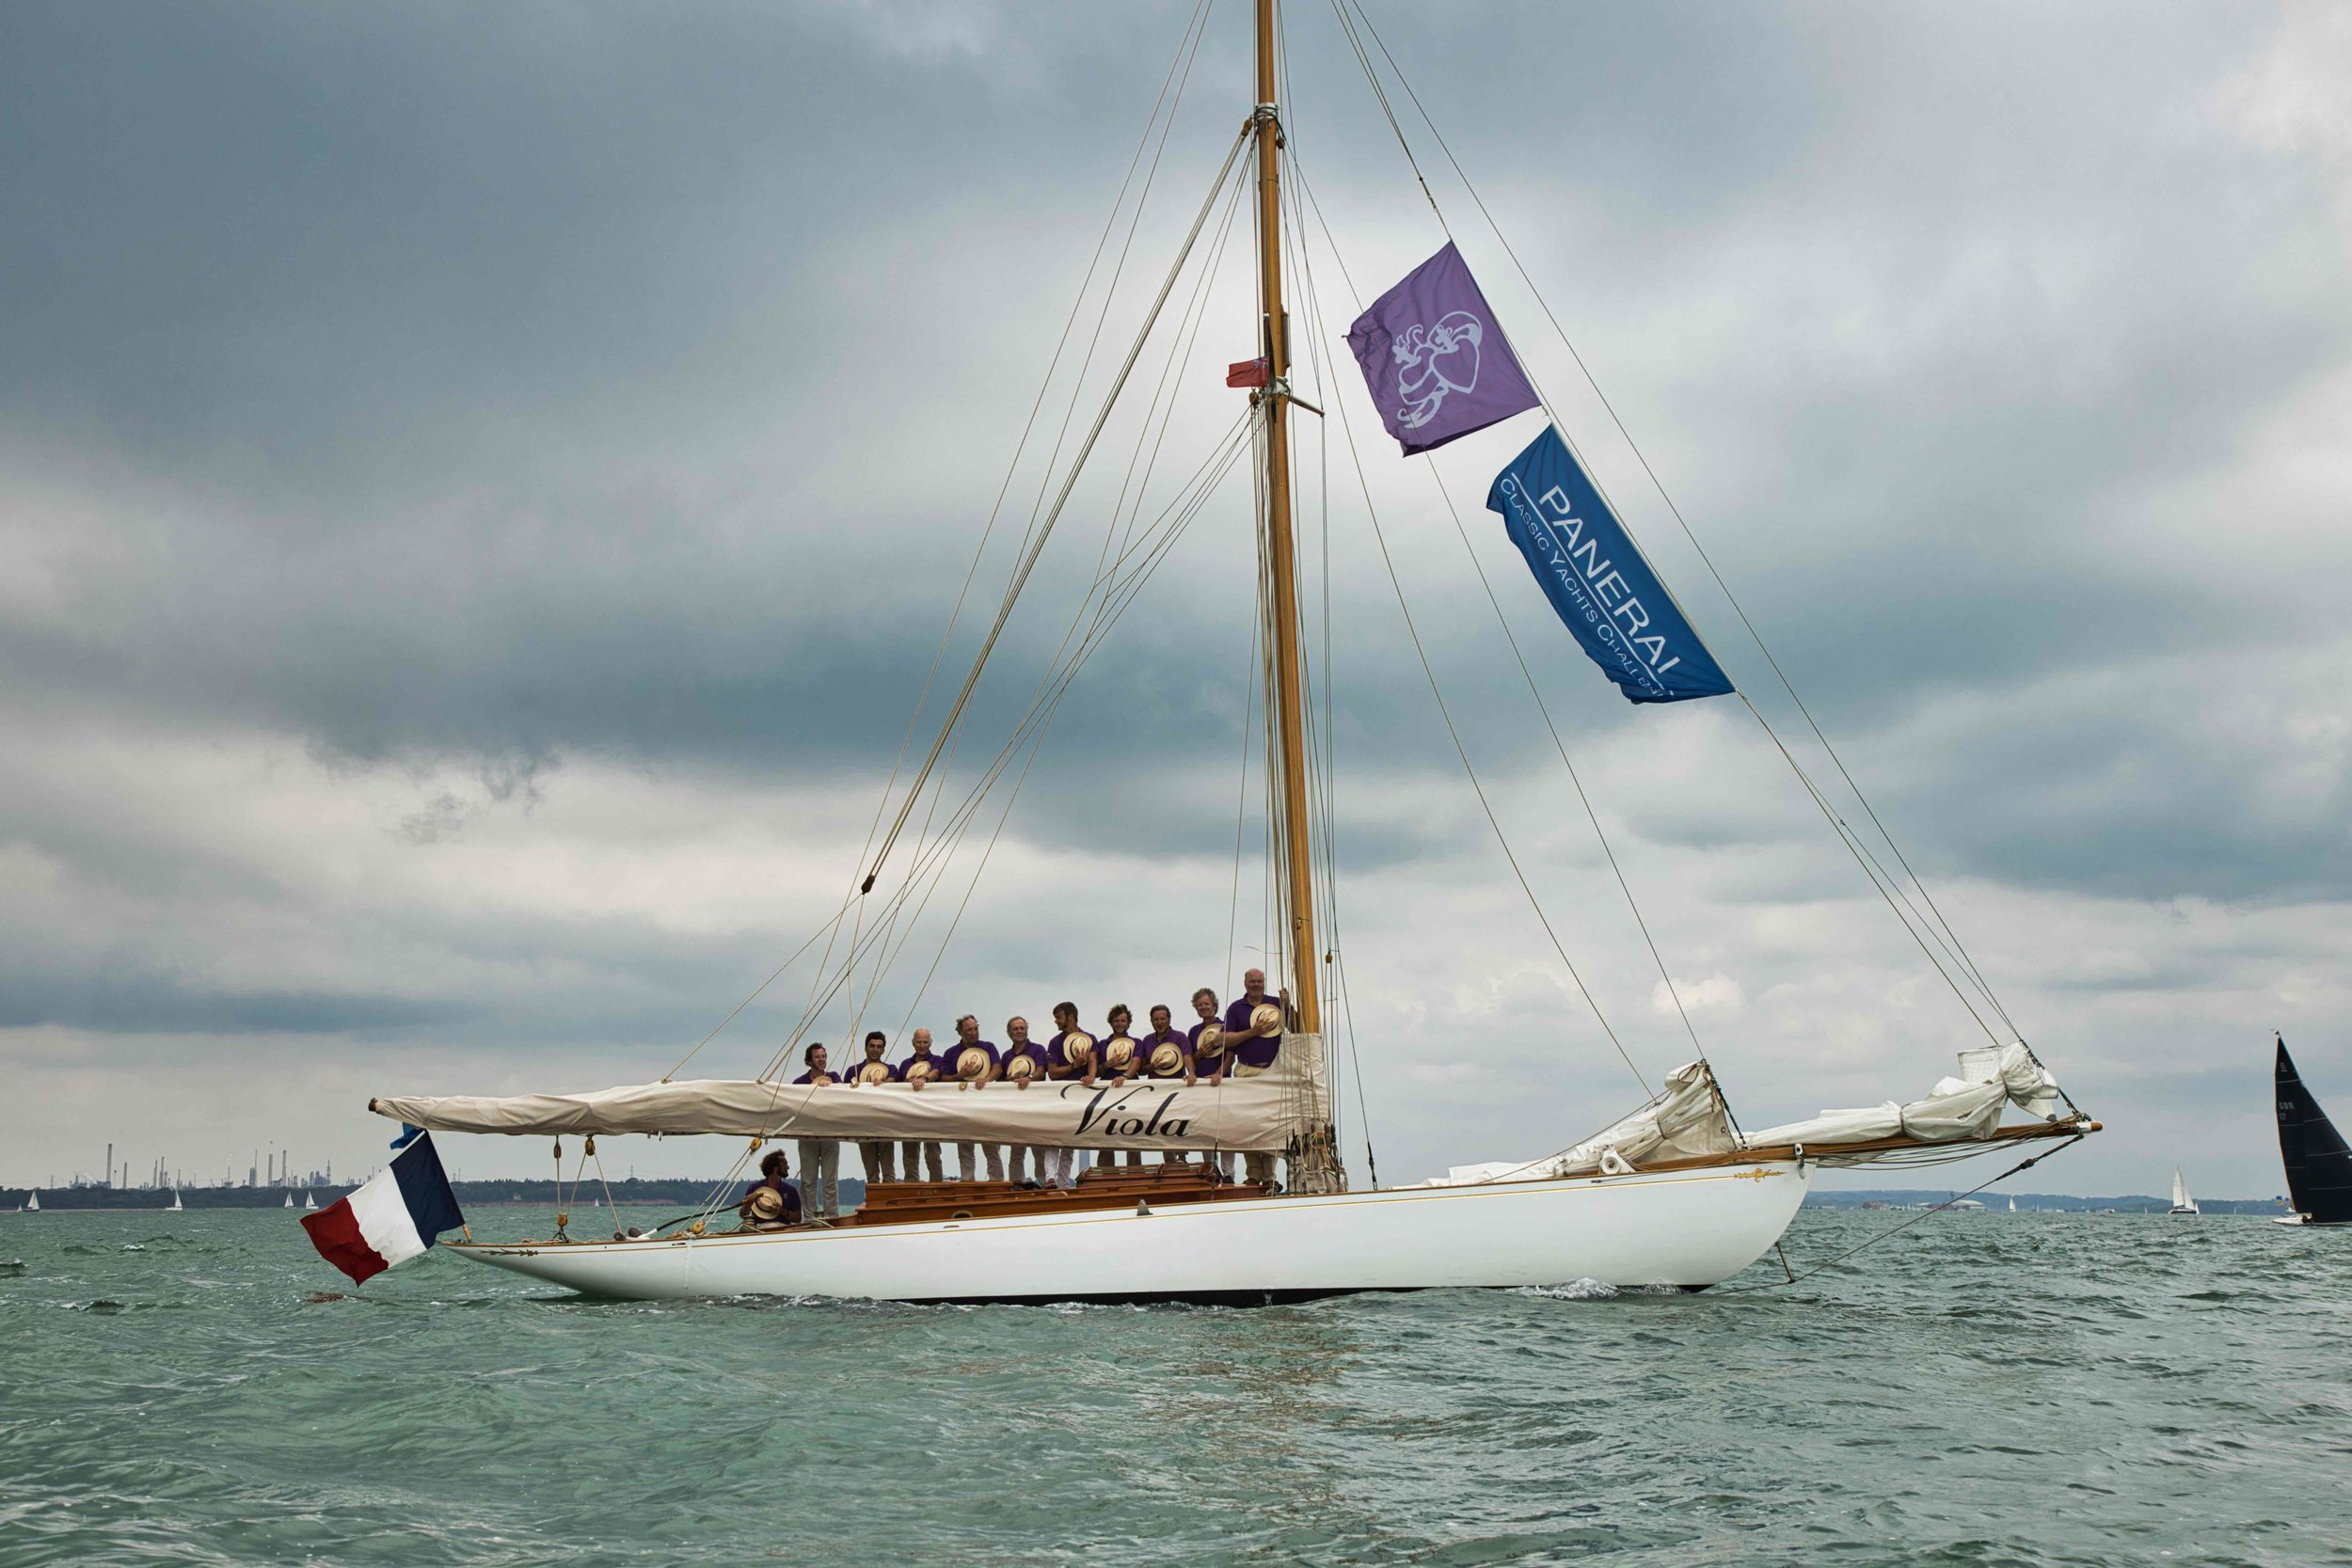 Fife Gaff Cutter Viola during the Concours d'Elegance parade